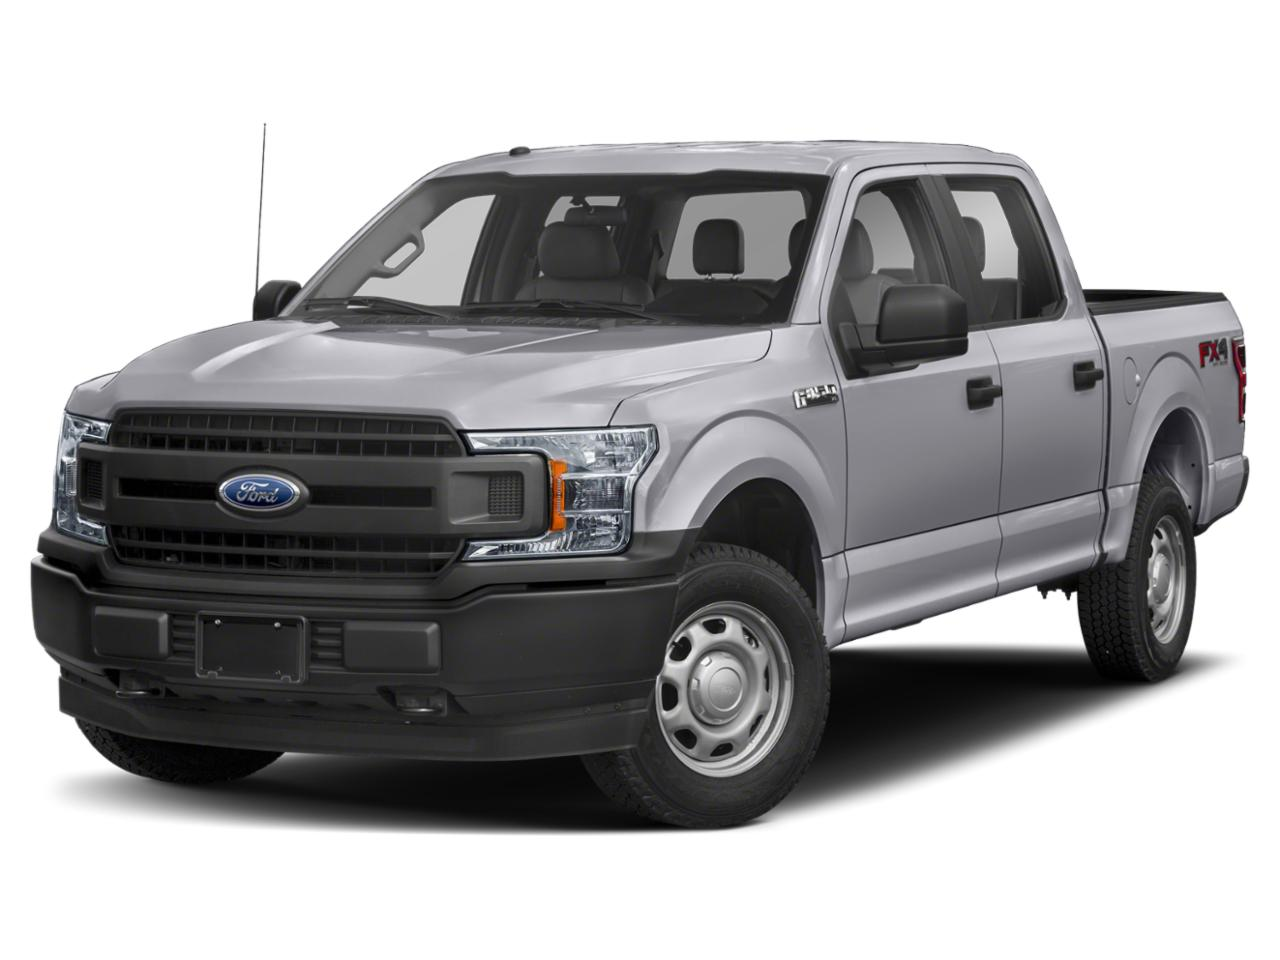 2020 Ford F-150 Vehicle Photo in TEMPLE, TX 76504-3447